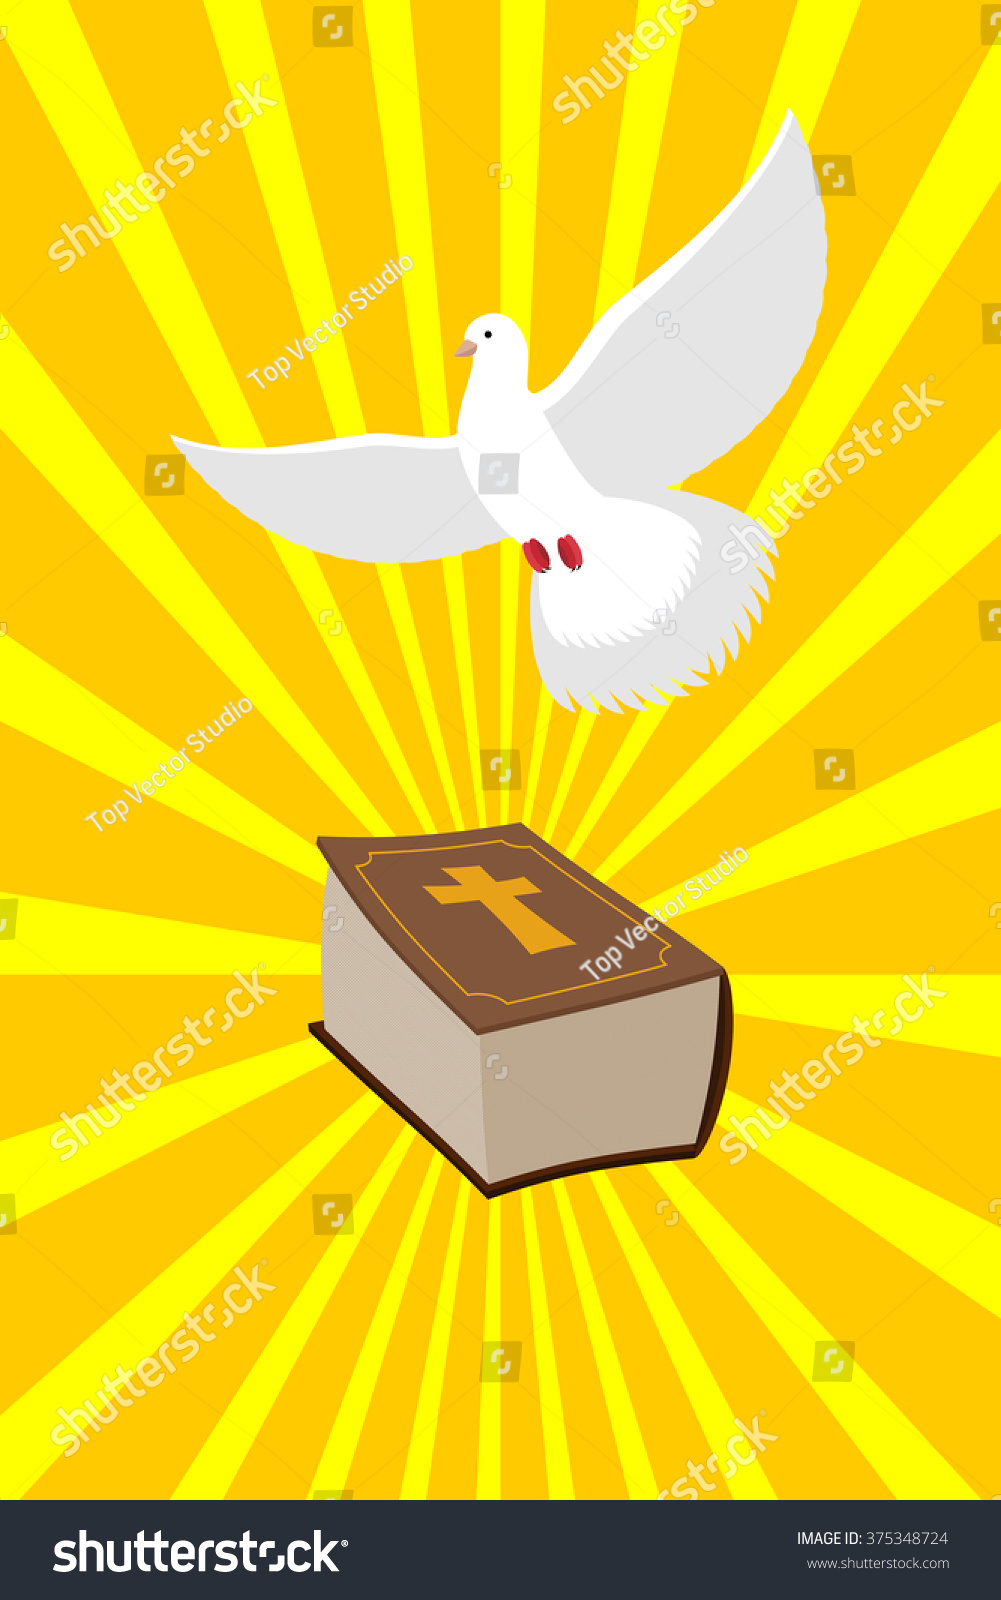 Bible white dove symbols christianity old stock vector 375348724 bible and white dove symbols of christianity old holy book of new testament and bird biocorpaavc